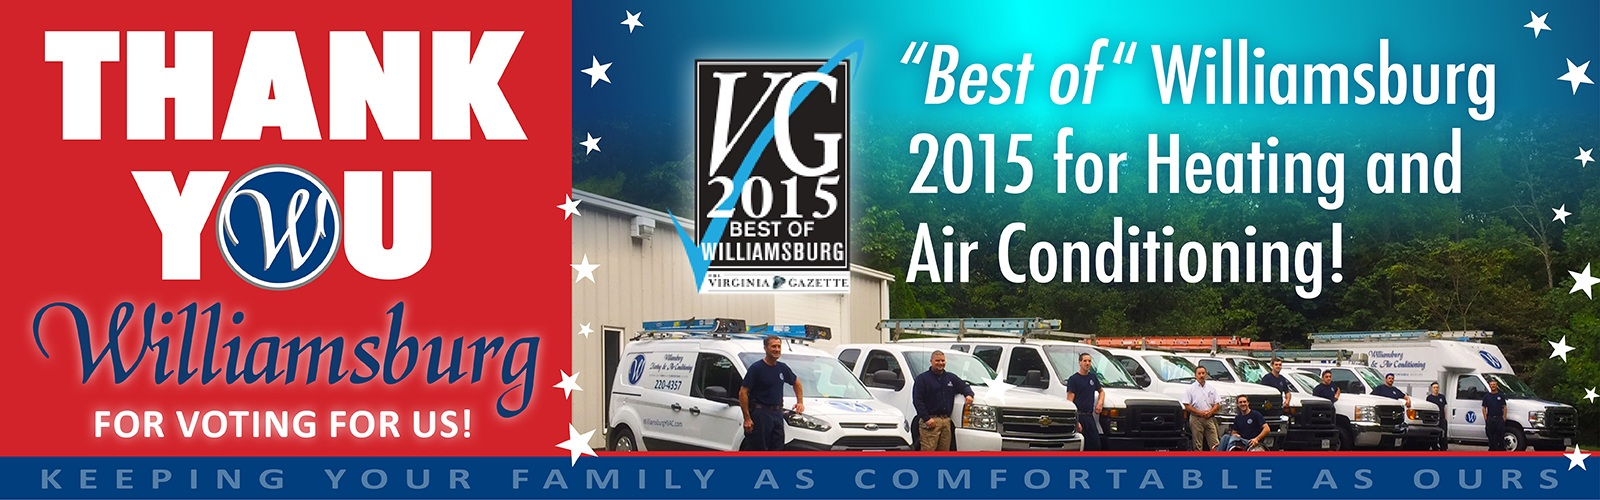 Williamsburg Heating & Air Conditioning - Best of Williamsburg 2015